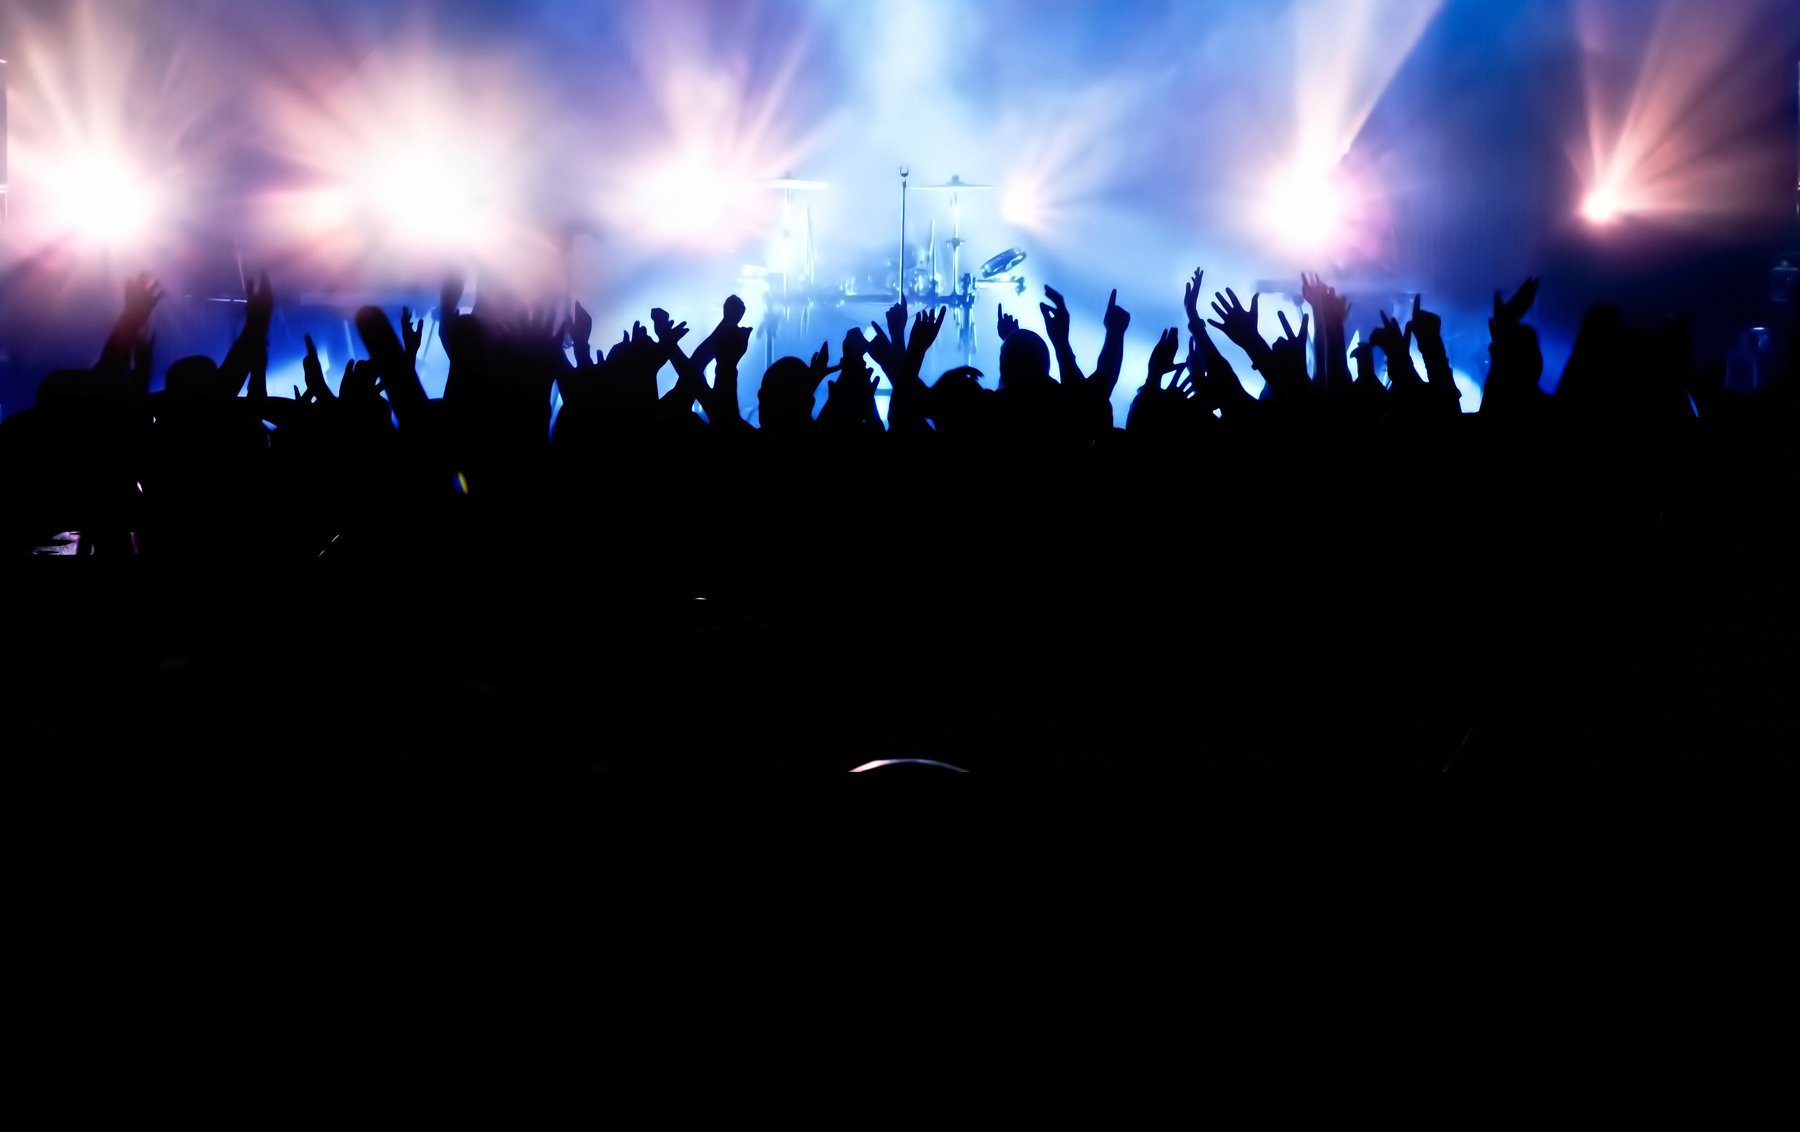 Crowd wallpaper wallpapersafari - Concert crowd wallpaper ...